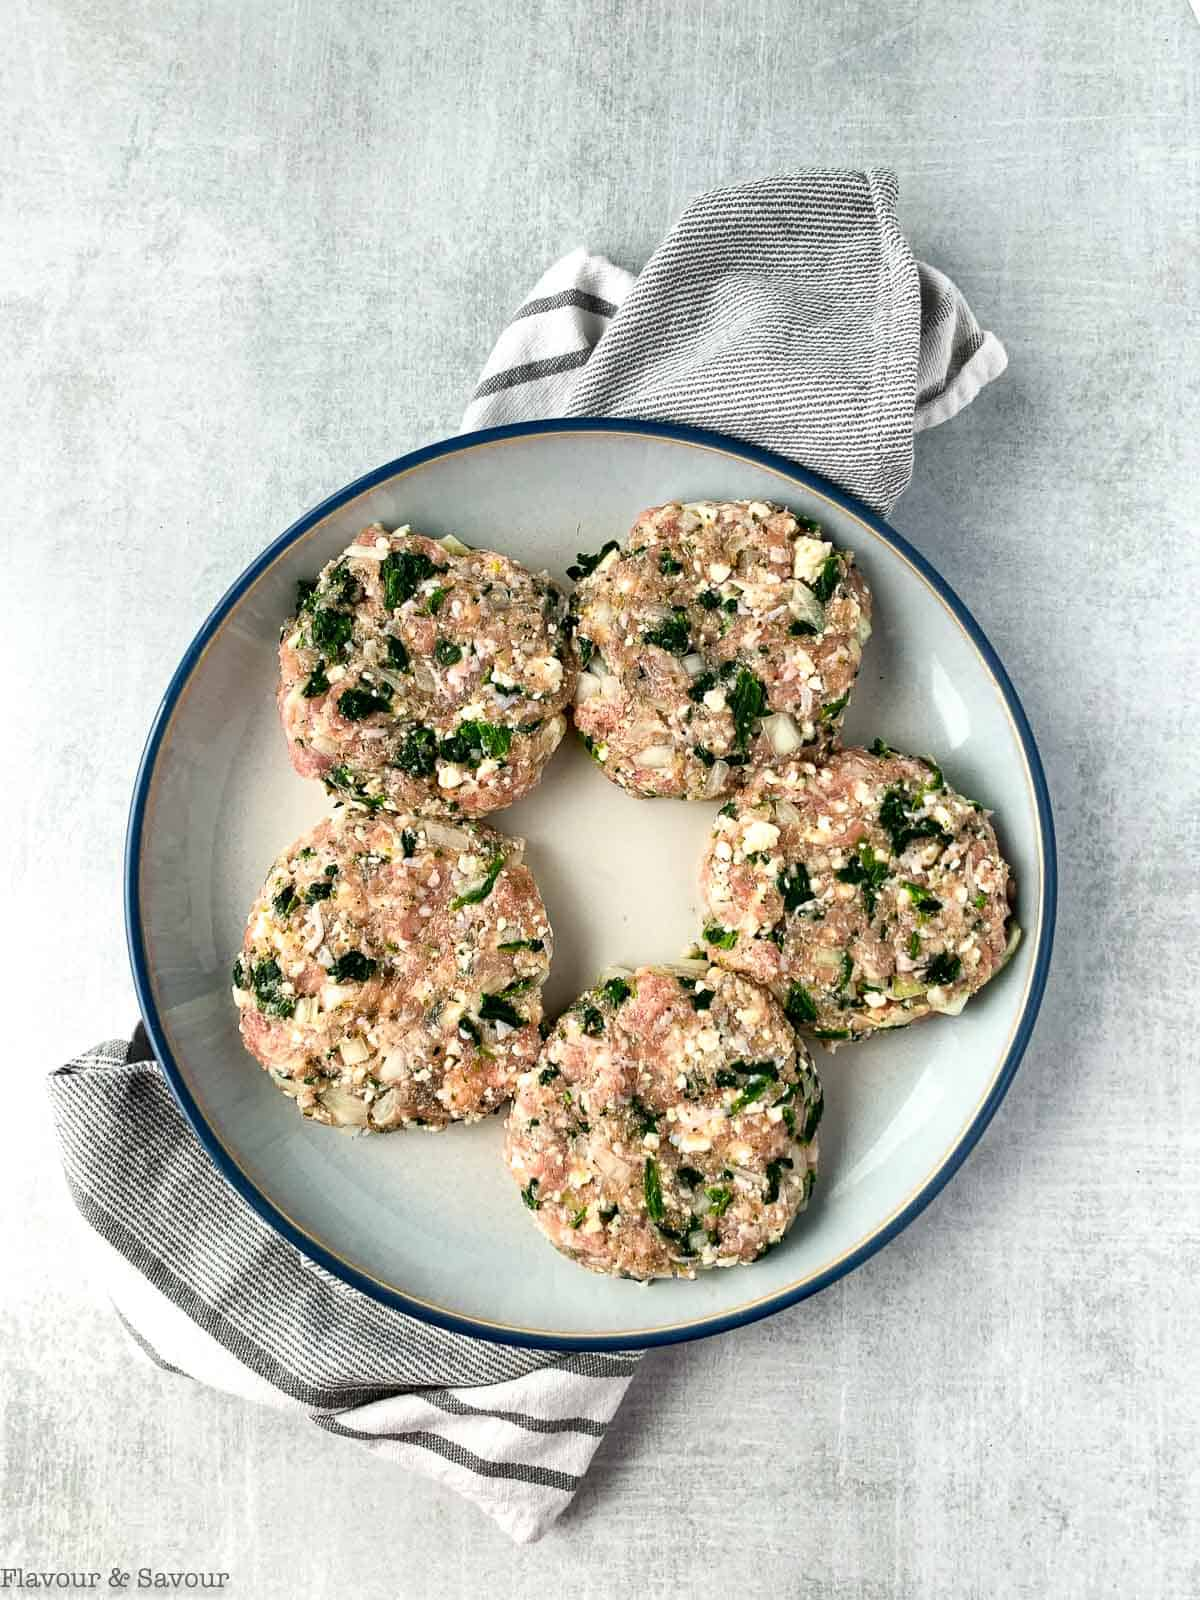 Five uncooked Greek Chicken Burger patties on a plate.